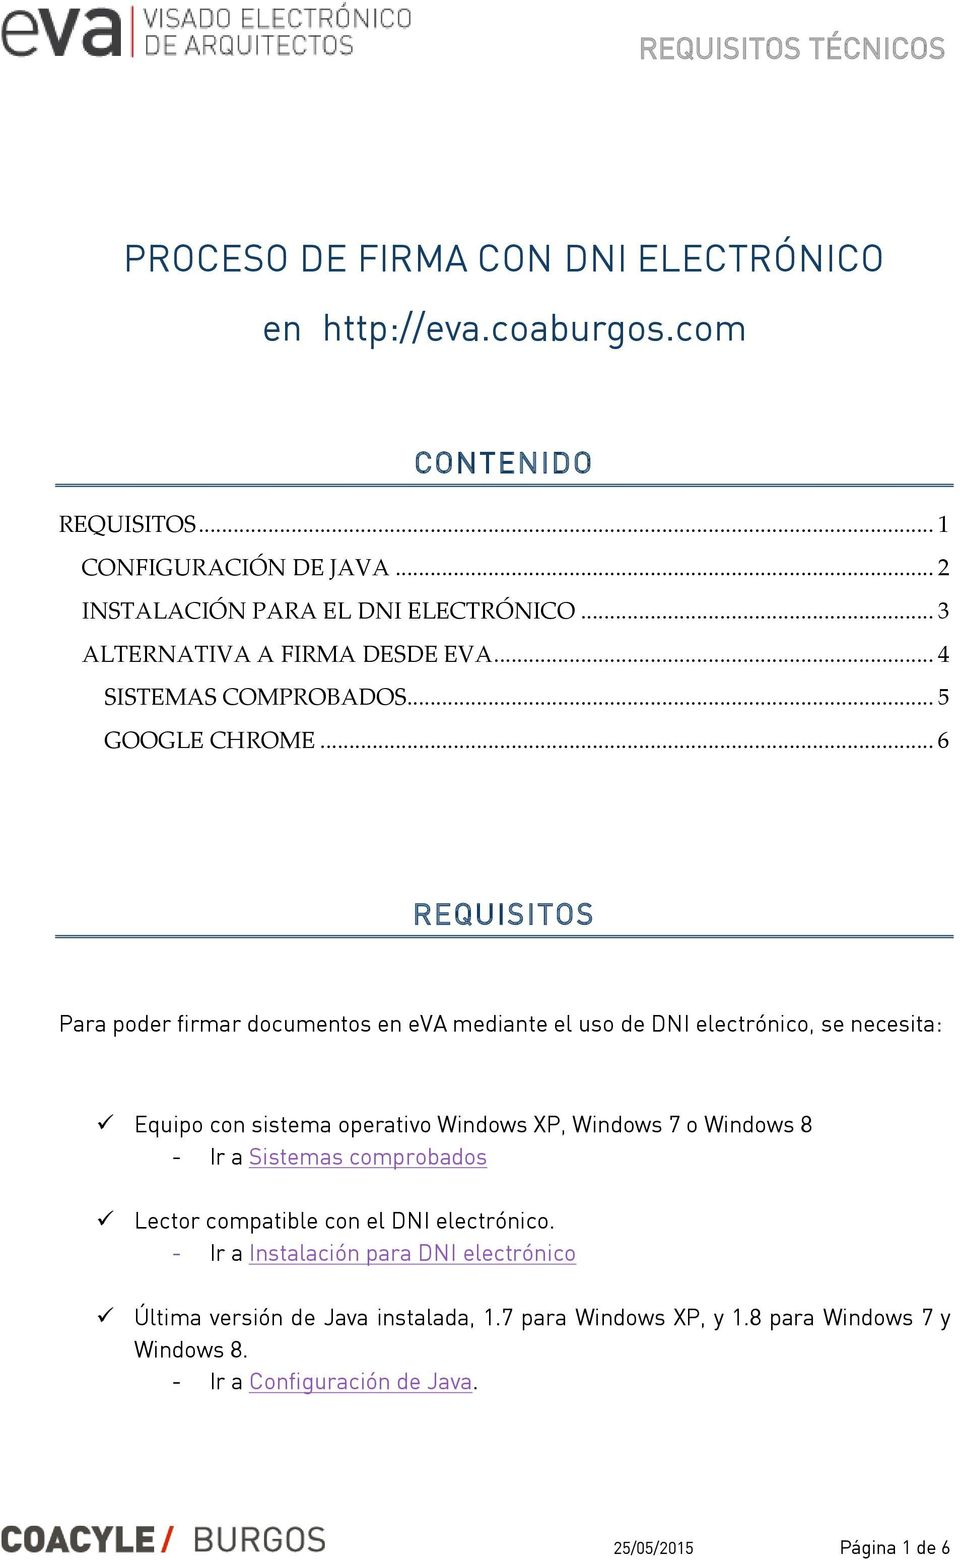 .. 6 REQUISITOS Para poder firmar documentos en eva mediante el uso de DNI electrónico, se necesita: Equipo con sistema operativo Windows XP, Windows 7 o Windows 8 -